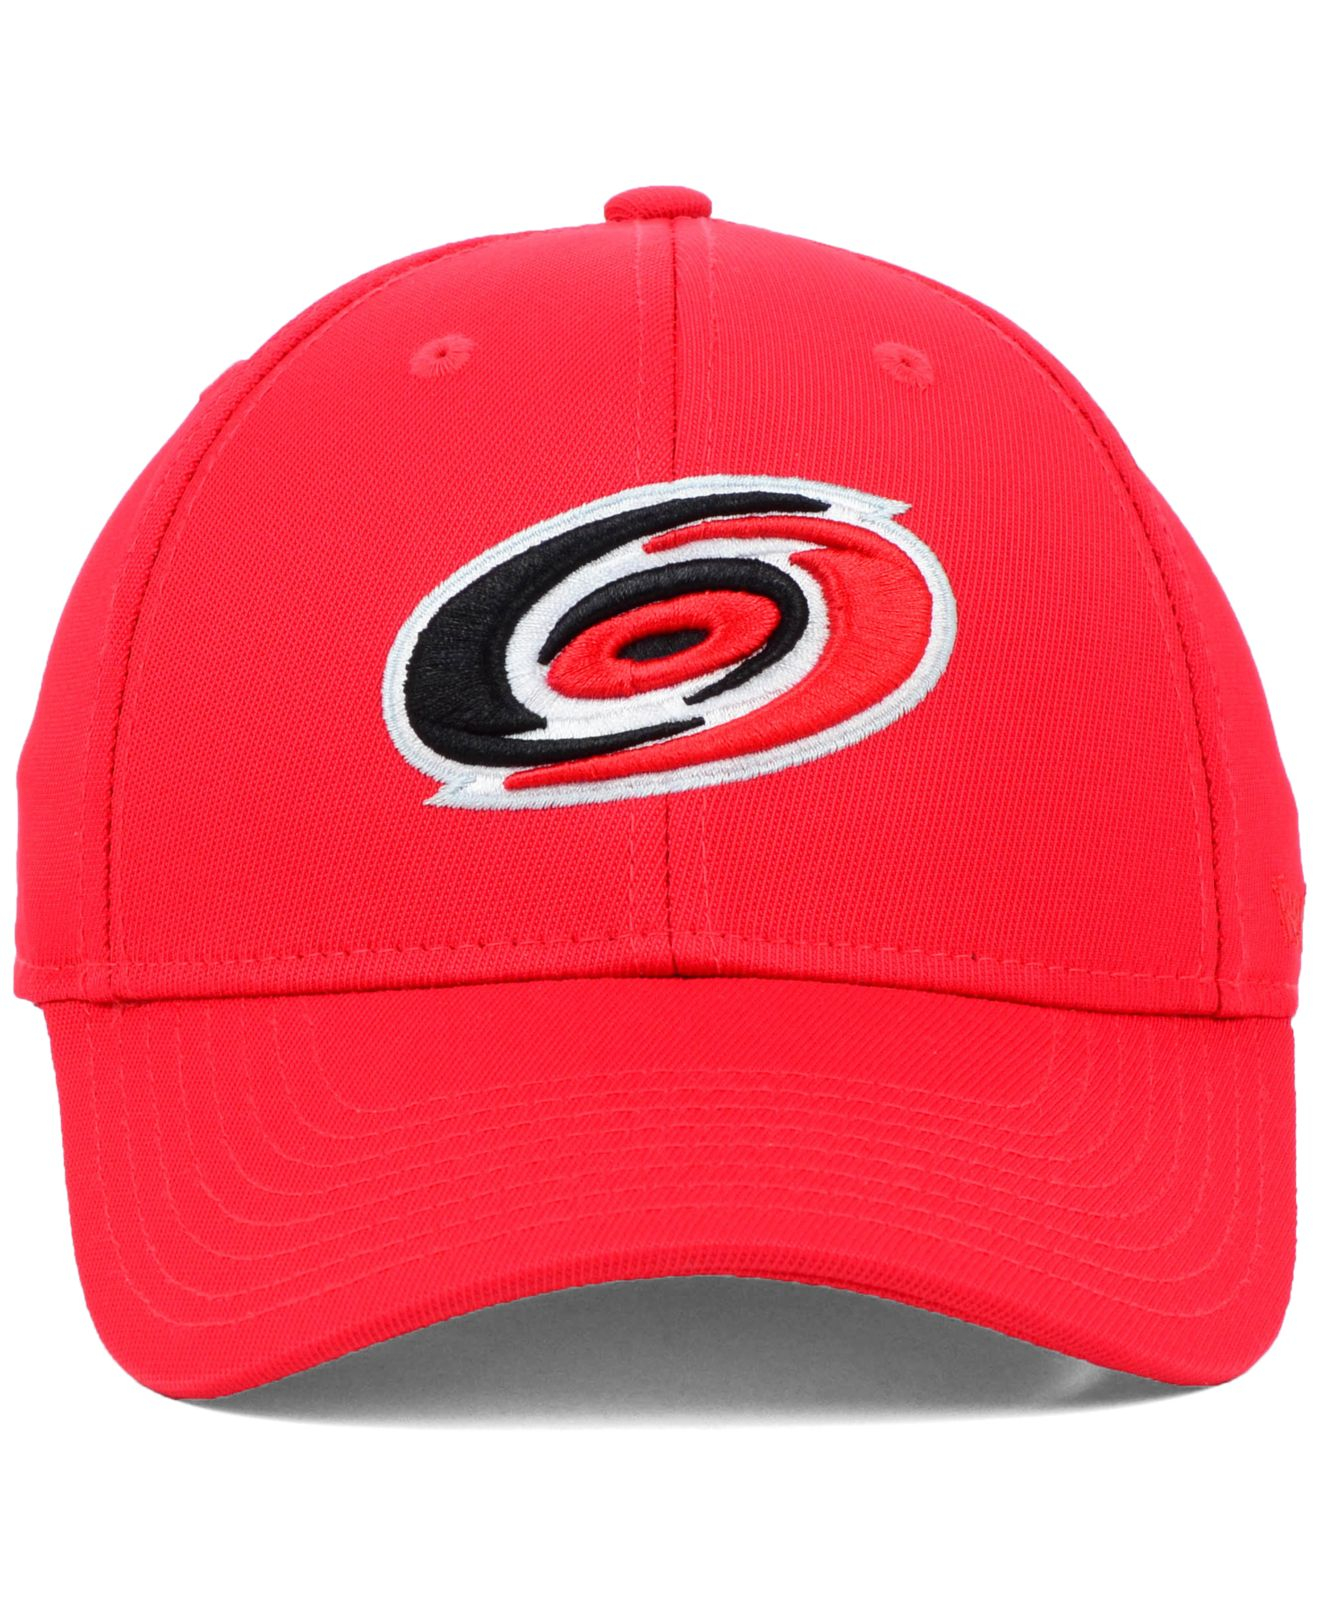 f96b0c08e77 Lyst - Reebok Carolina Hurricanes Nhl Hat Trick 2.0 Cap in Red for Men